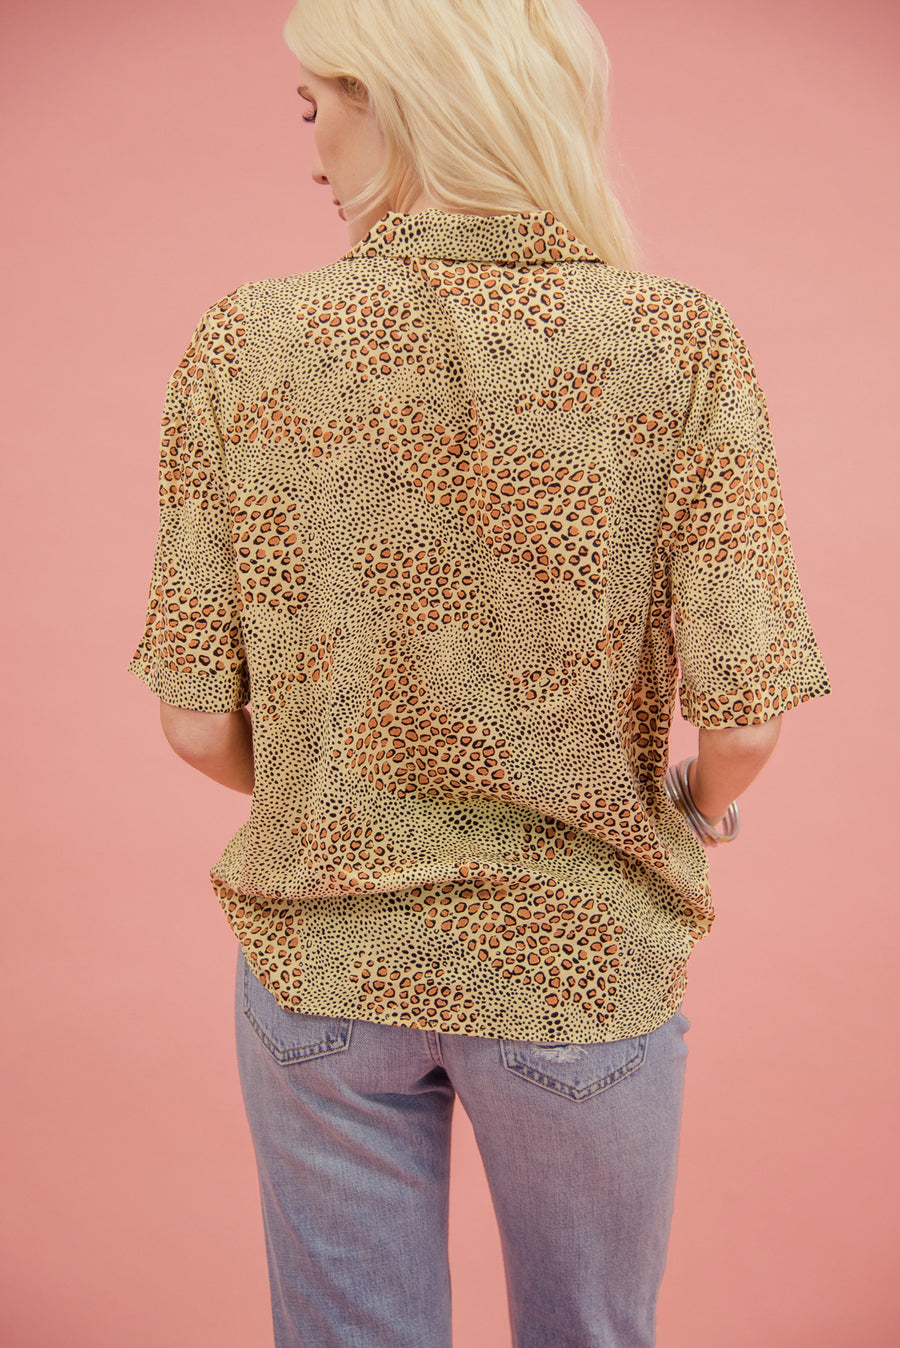 AMUSE SOCIETY: WILDCAT SHORT SLEEVE BLOUSE